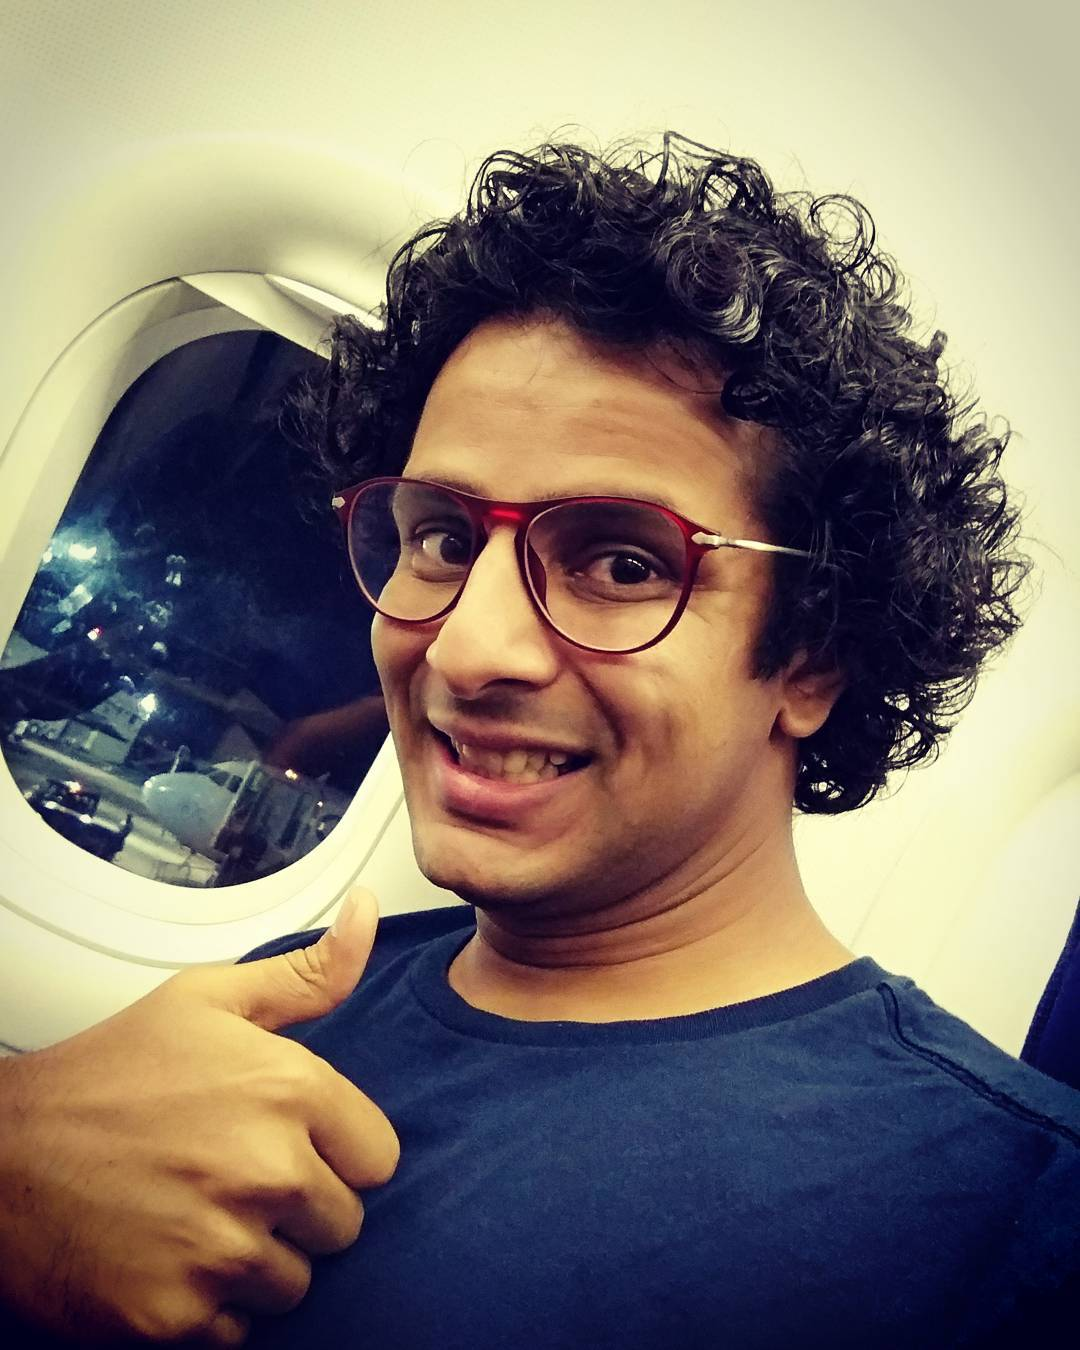 GOA CALLING! After a fantastic comedy show in Chennai for 850+ members of Gujarati Youth Association, now heading to Goa to wrap a film shoot! 🤓  #goa #flight #shoot #film #goacalling #beach #actor #morning #chennai #selfie #instapic #calangute #actorslife #sunset #bagabeach #goadiaries #tourism #goanlife #selfietime #traveler #lovegoa #goamemories #lovemyjob #flying #view #photooftheday #goatrip #watersports #bananaride #party